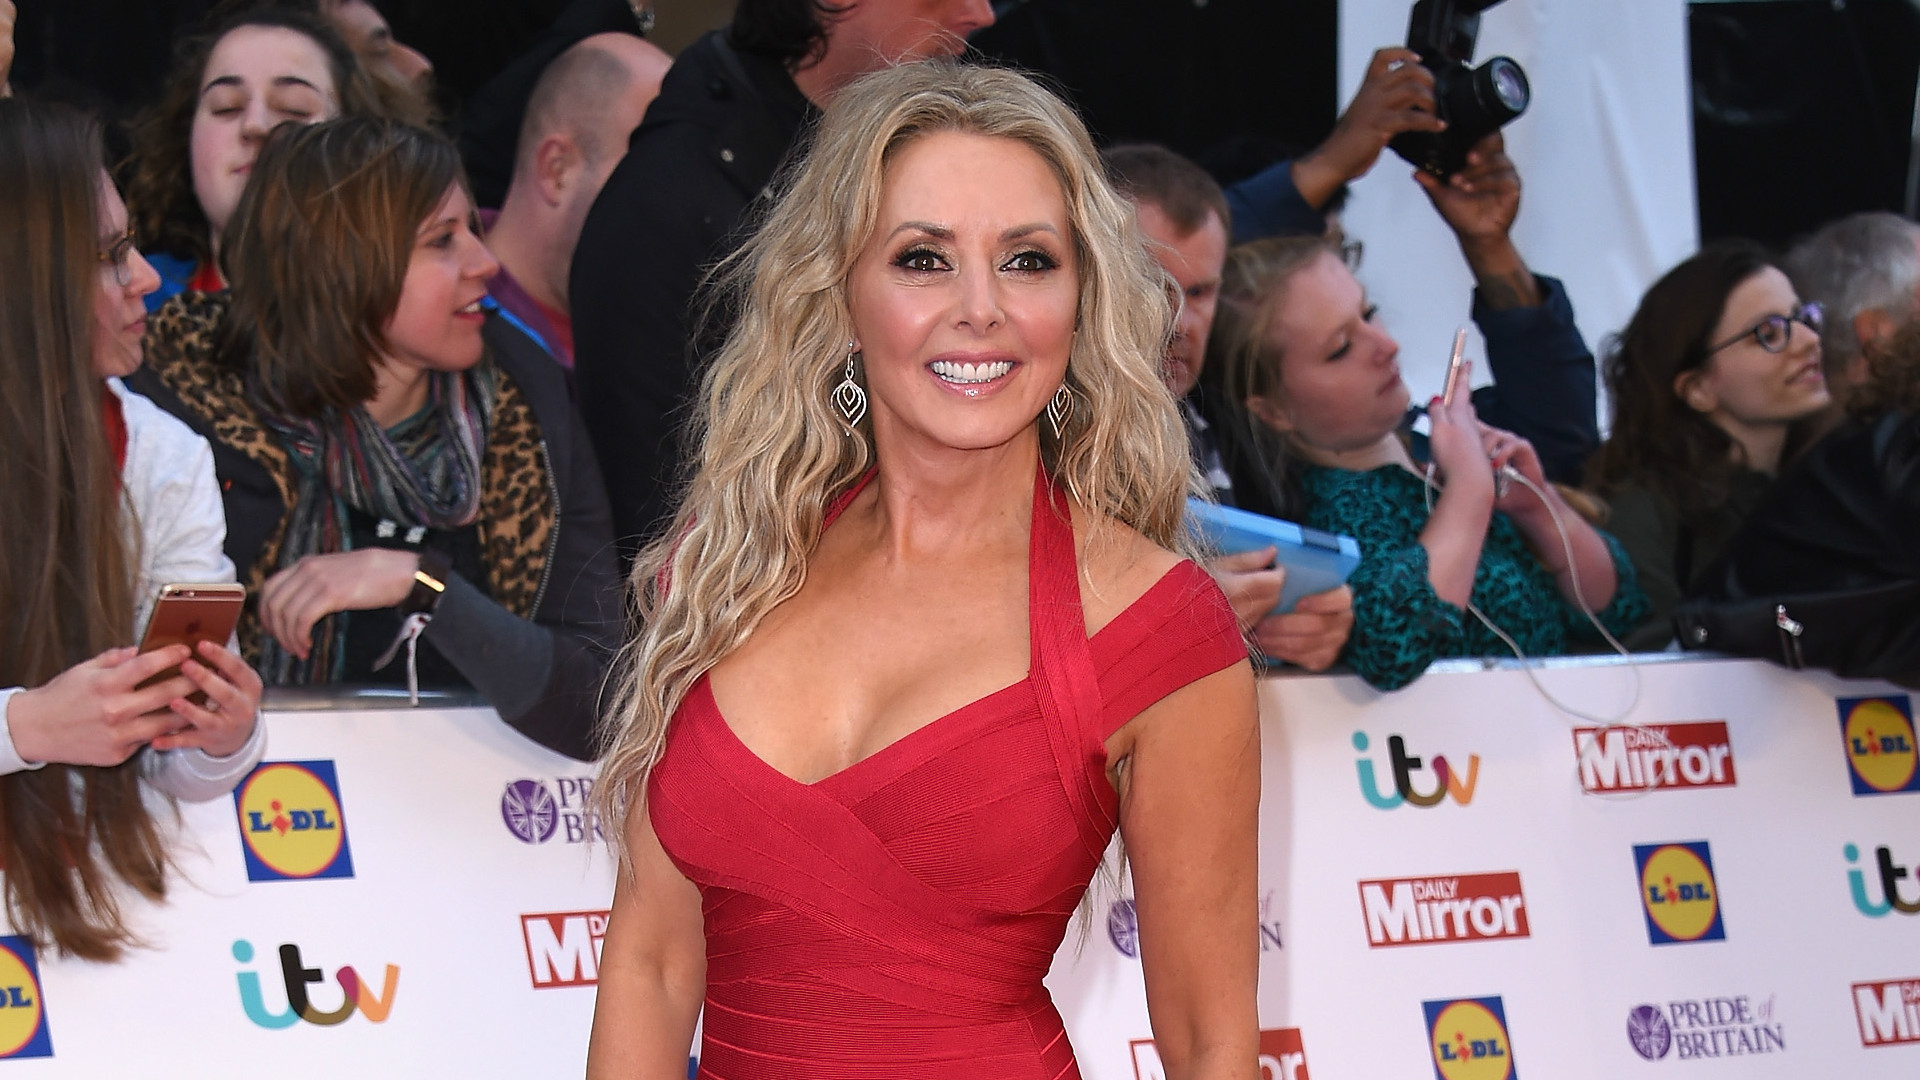 Carol Vorderman poses in a red dress.